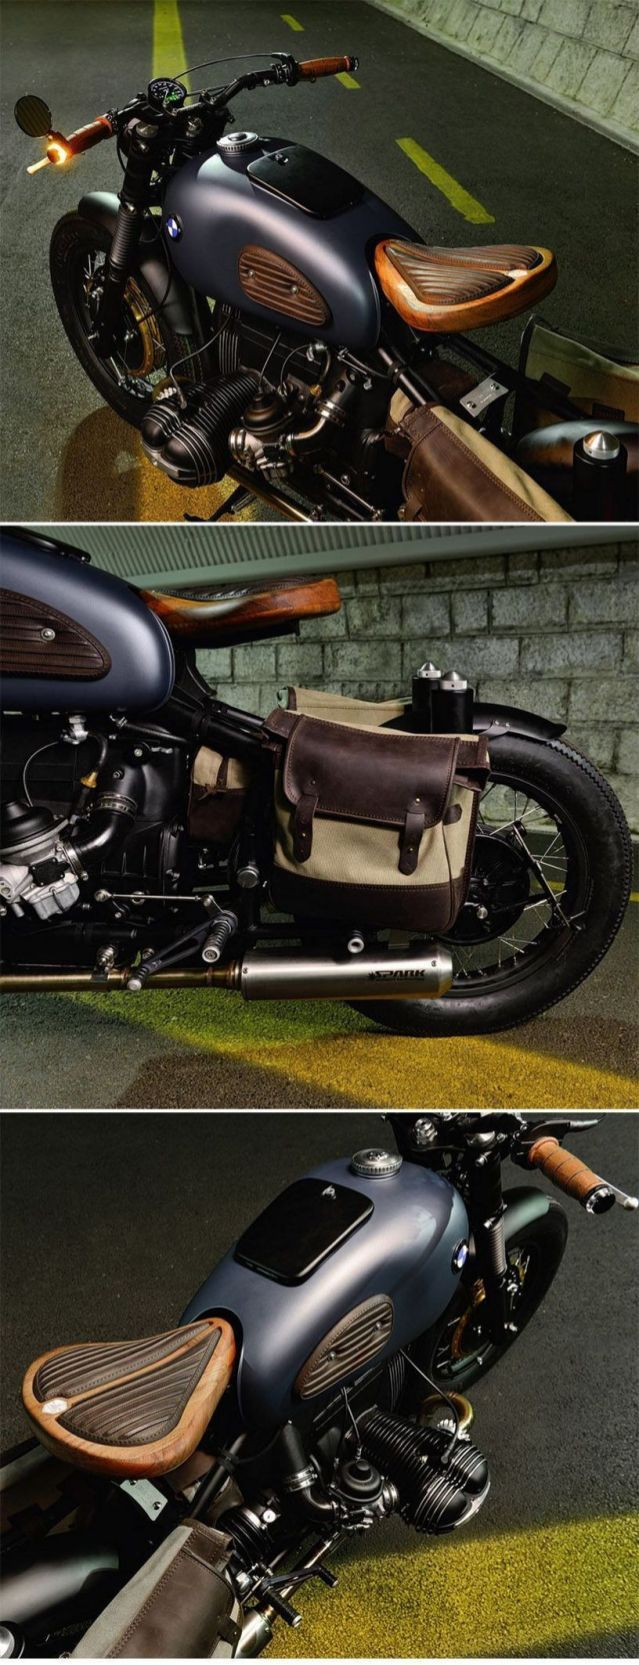 48 bmw cafe racer photography ideas